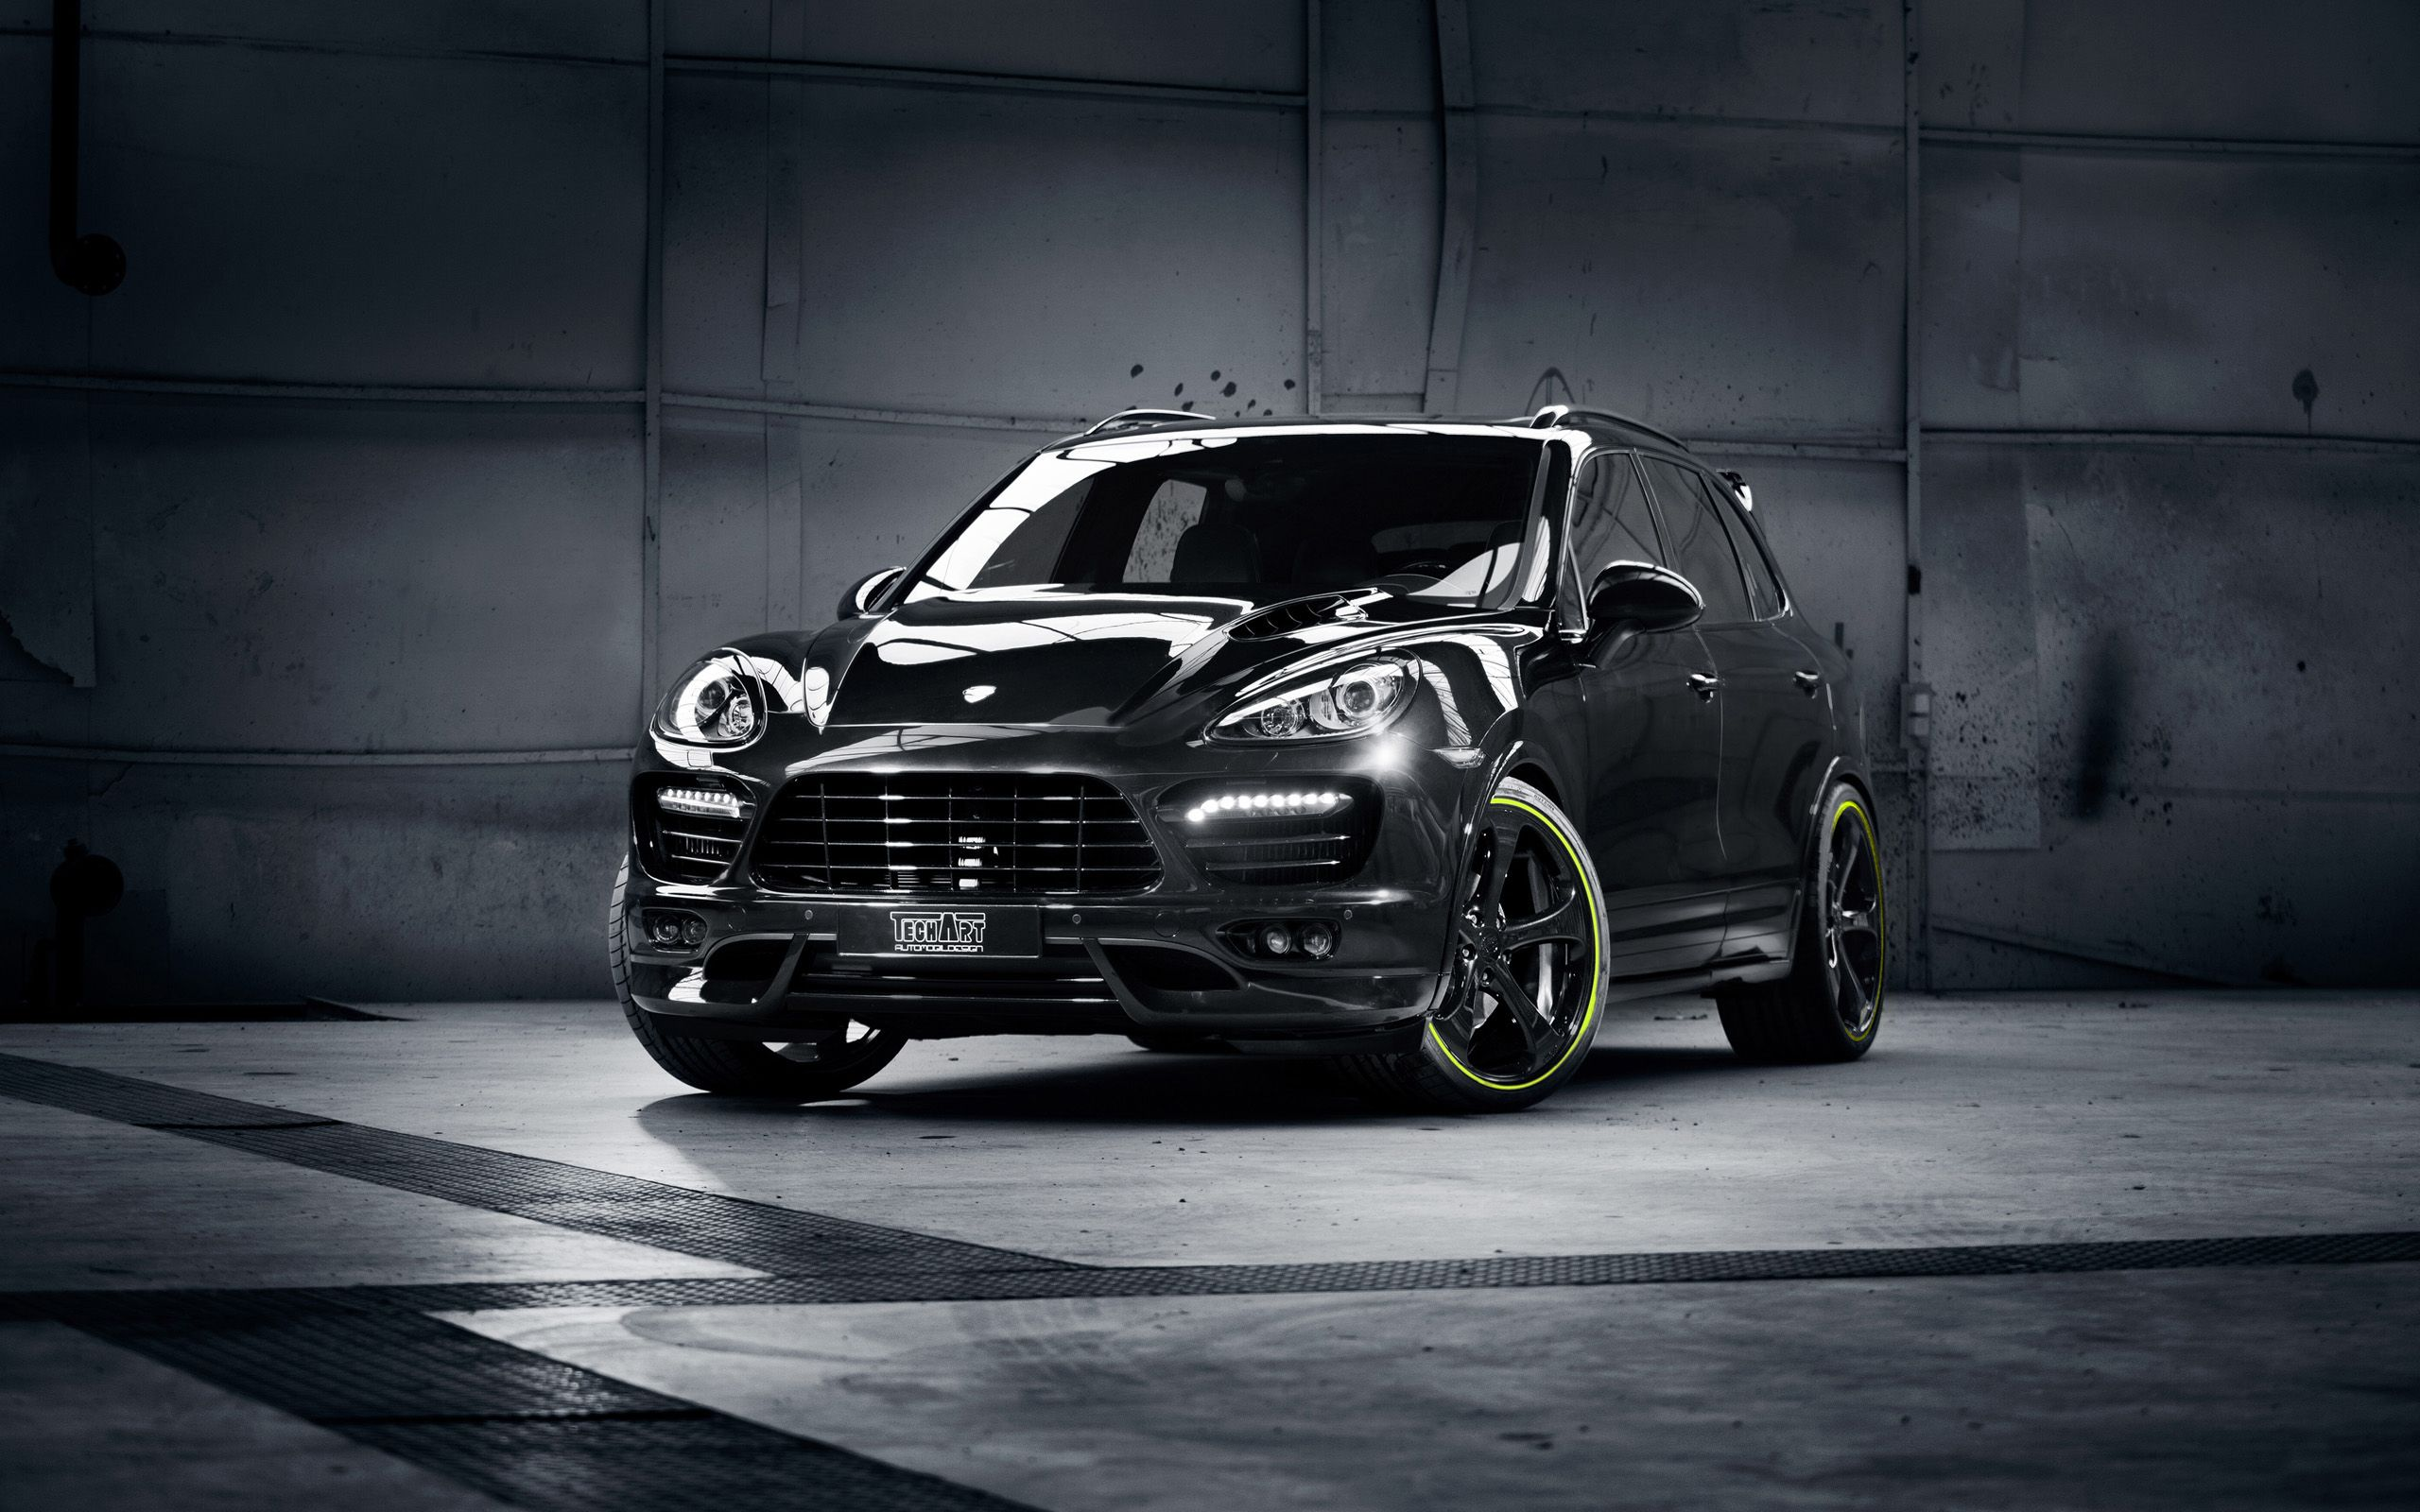 Pin by ovidiu drobot on wallpapers pinterest wallpaper search results for porsche cayenne turbo 2013 wallpaper adorable wallpapers voltagebd Images